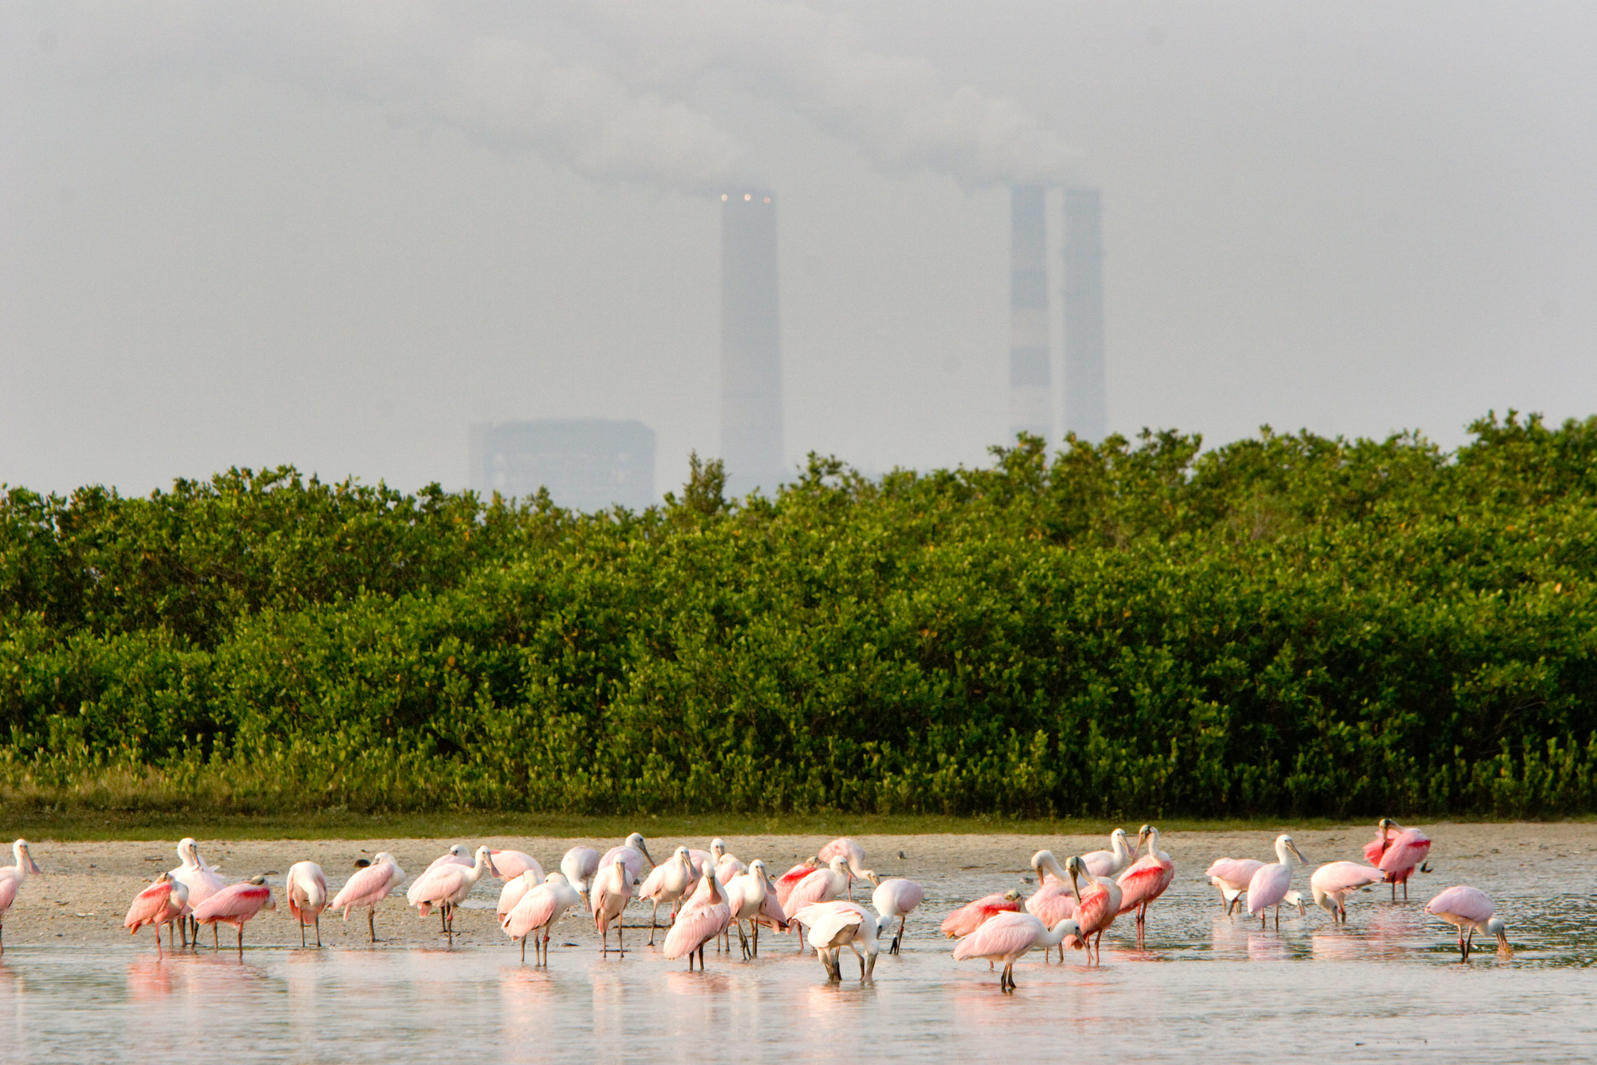 Roseate Spoonbills feed on a mangrove island in Florida. Tim Laman/National Geographic Creative